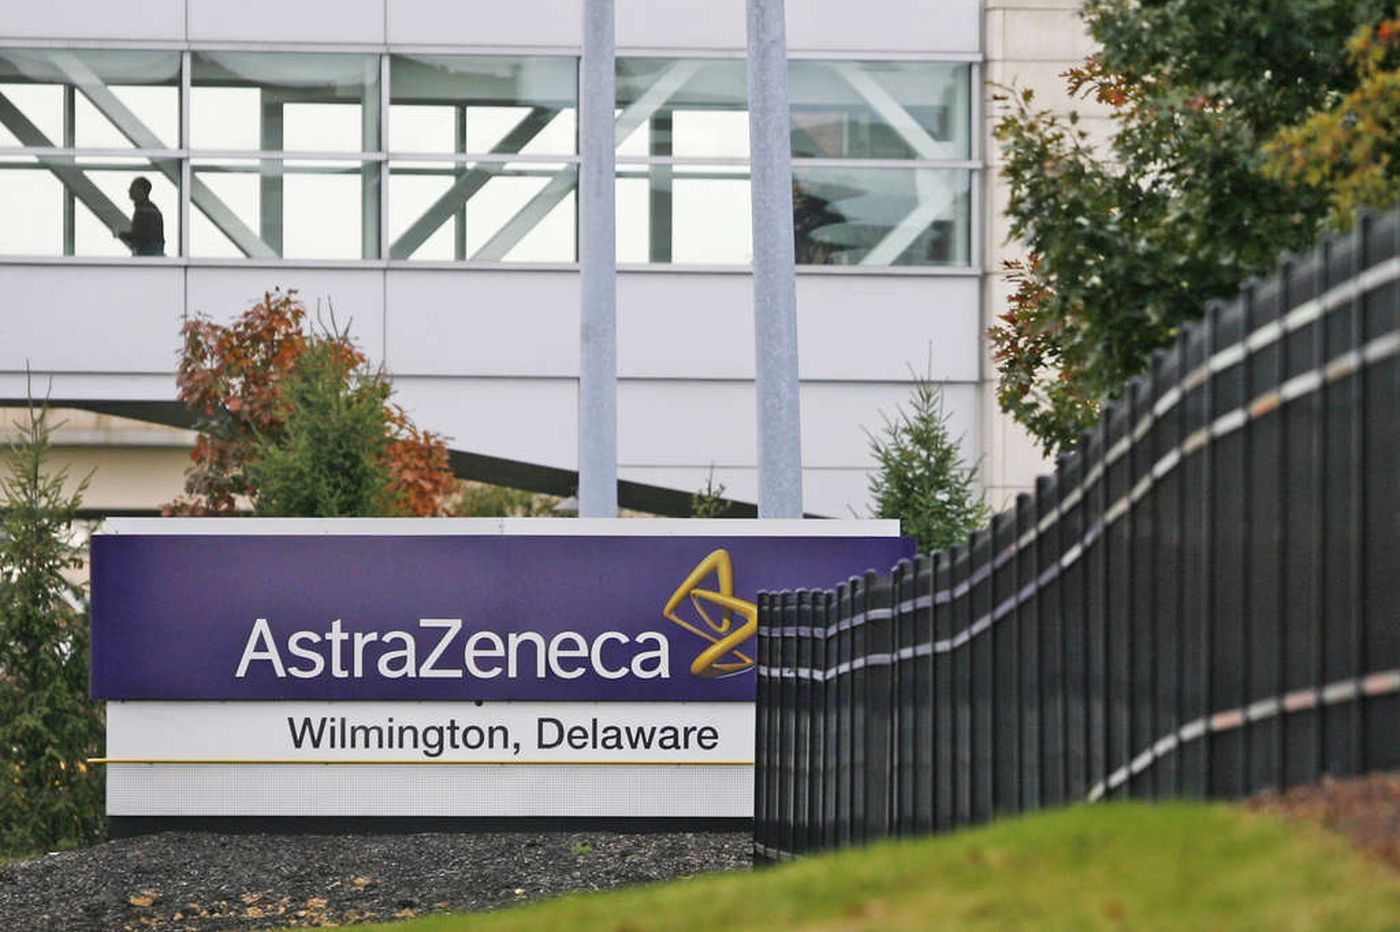 AstraZeneca hires former Sloan Kettering chief who failed to disclose industry payments